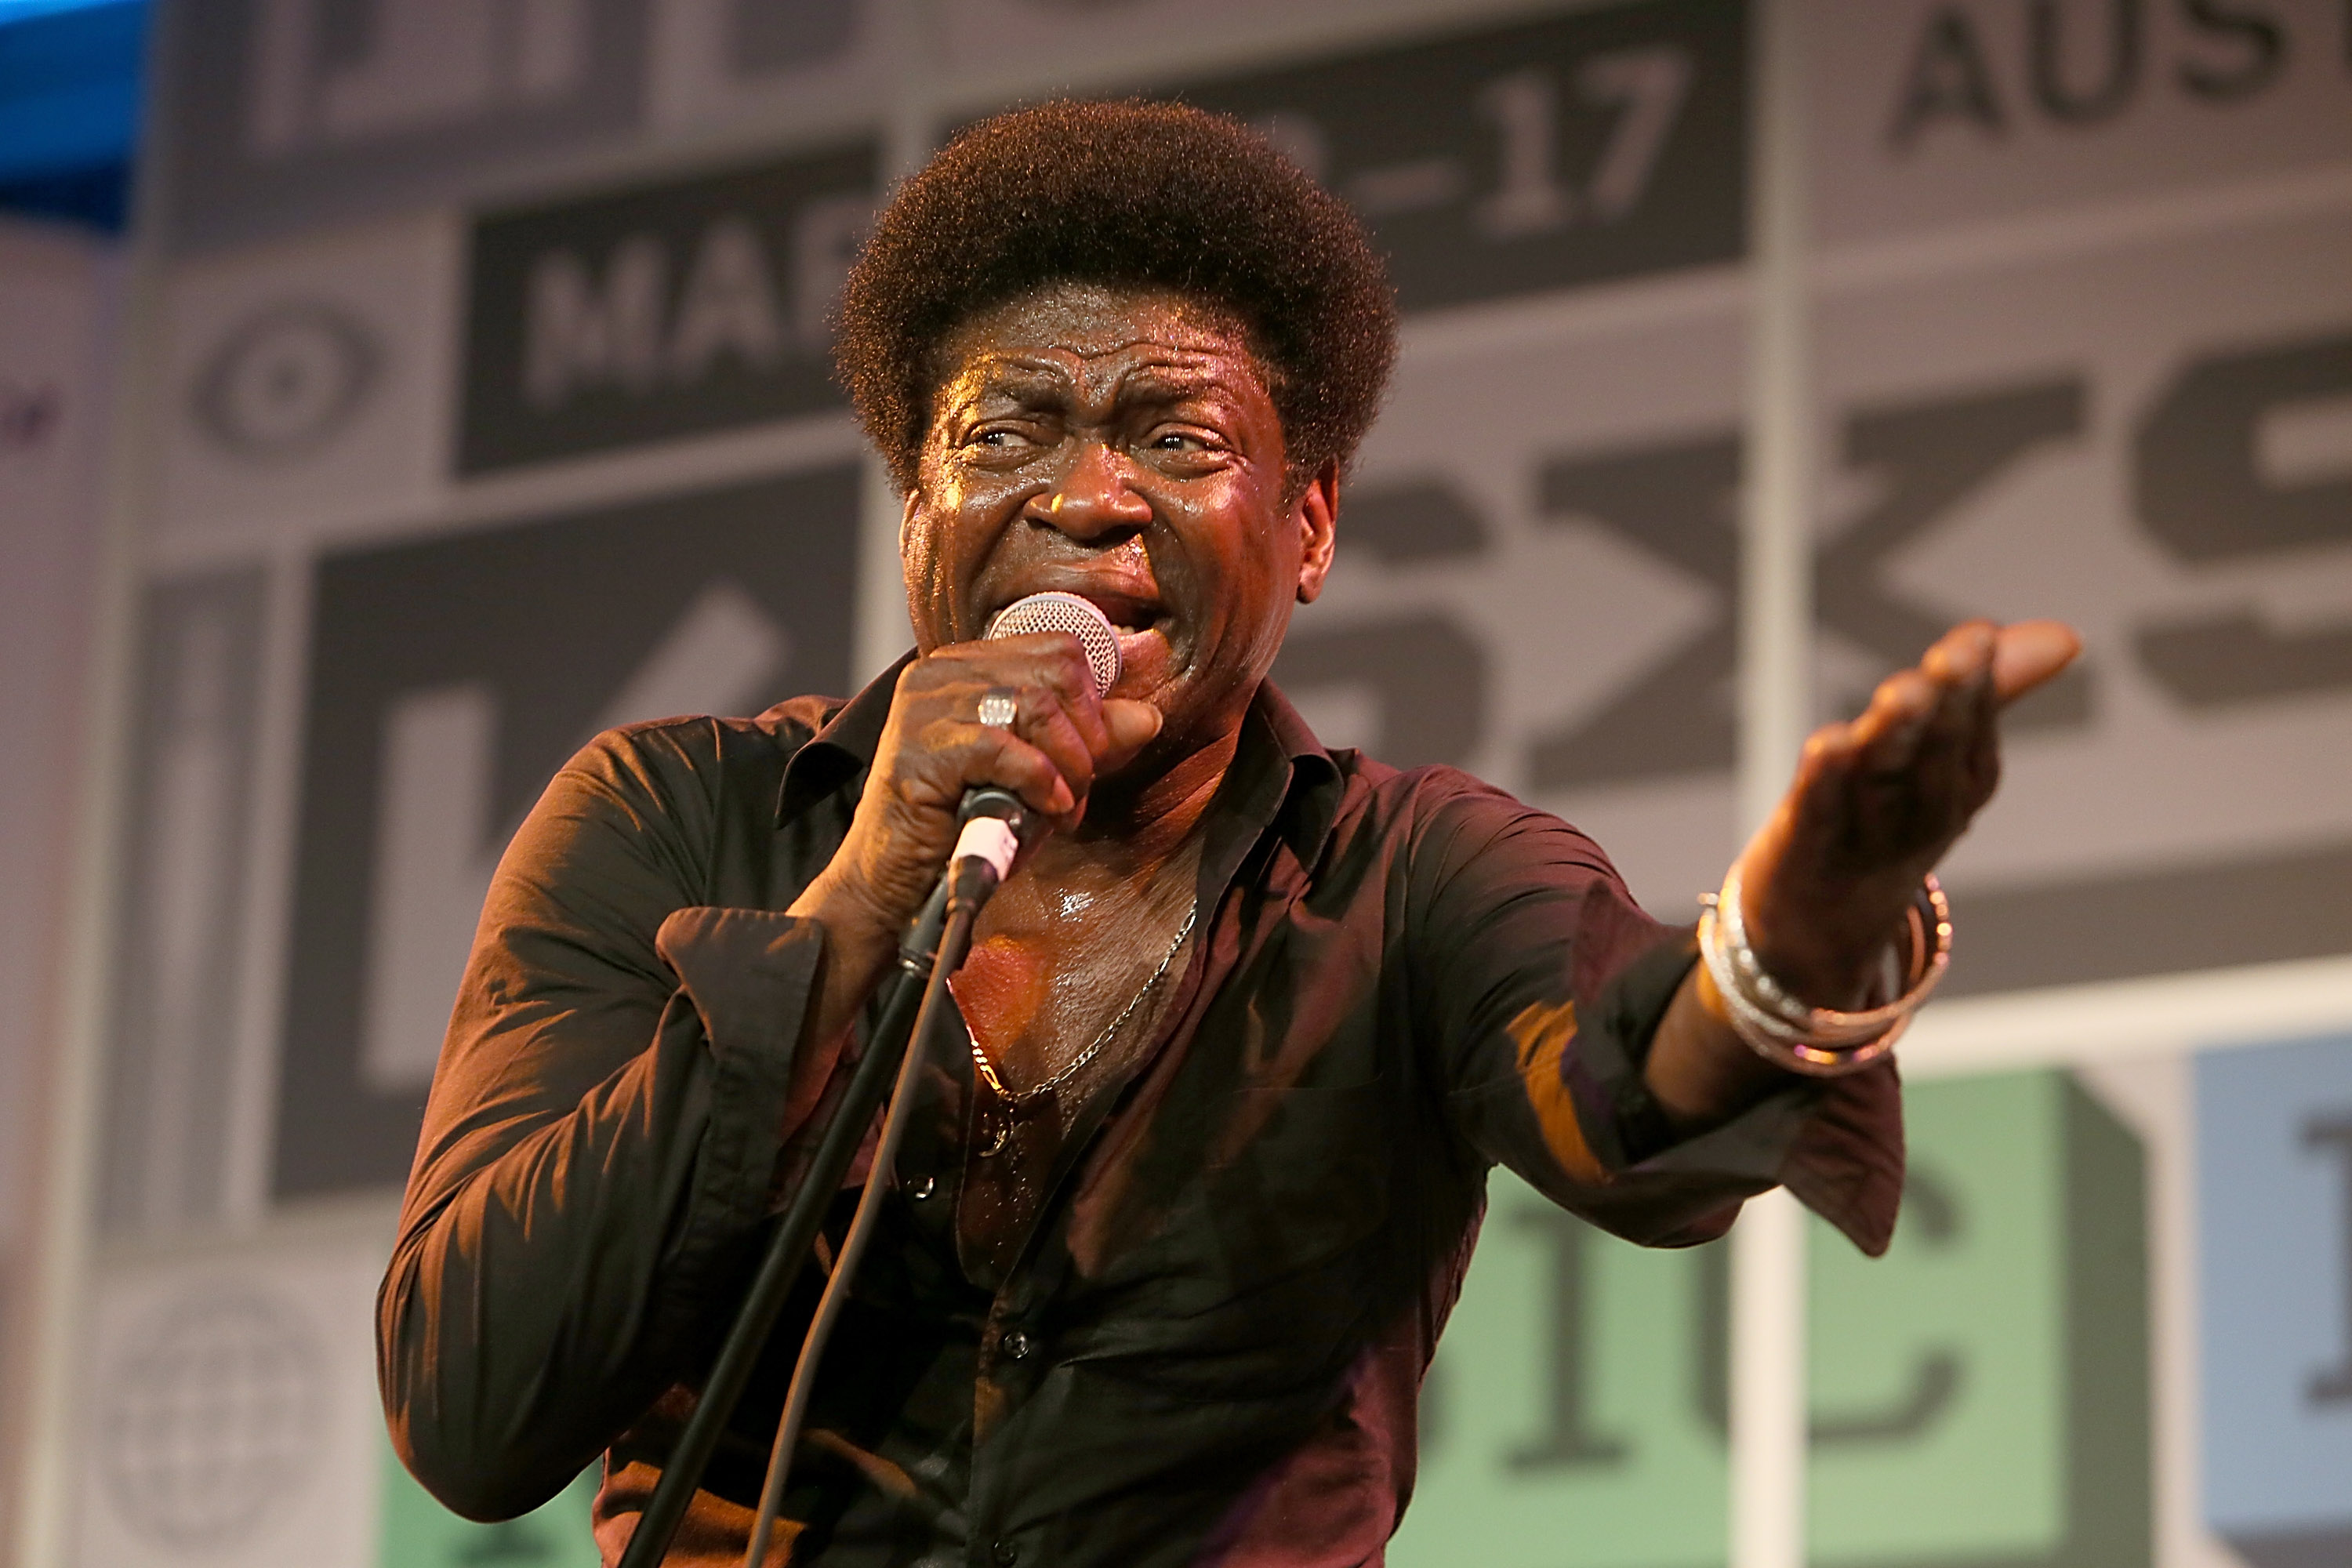 The Screaming Eagle of Soul, Charles Bradley, performs at the Public Radio Rocks showcase at the Austin Convention Center.